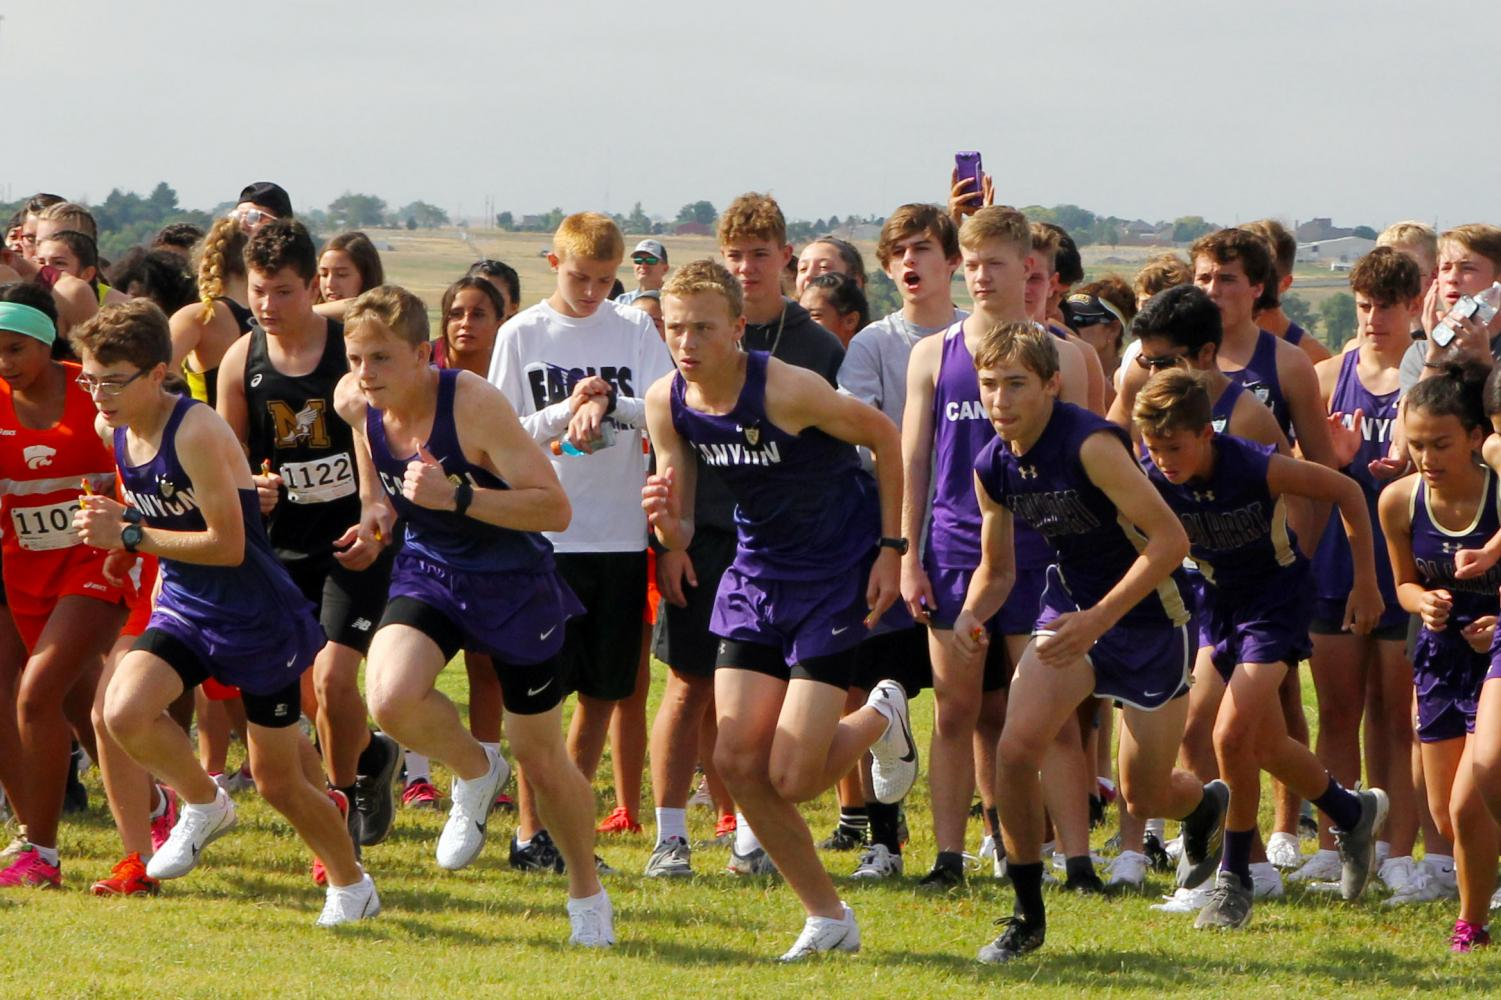 Runners start the course of the 6-mile relay Aug. 24 at Canyon High. Both cross country teams will compete in the Canyon Invitational Saturday, Oct. 5.